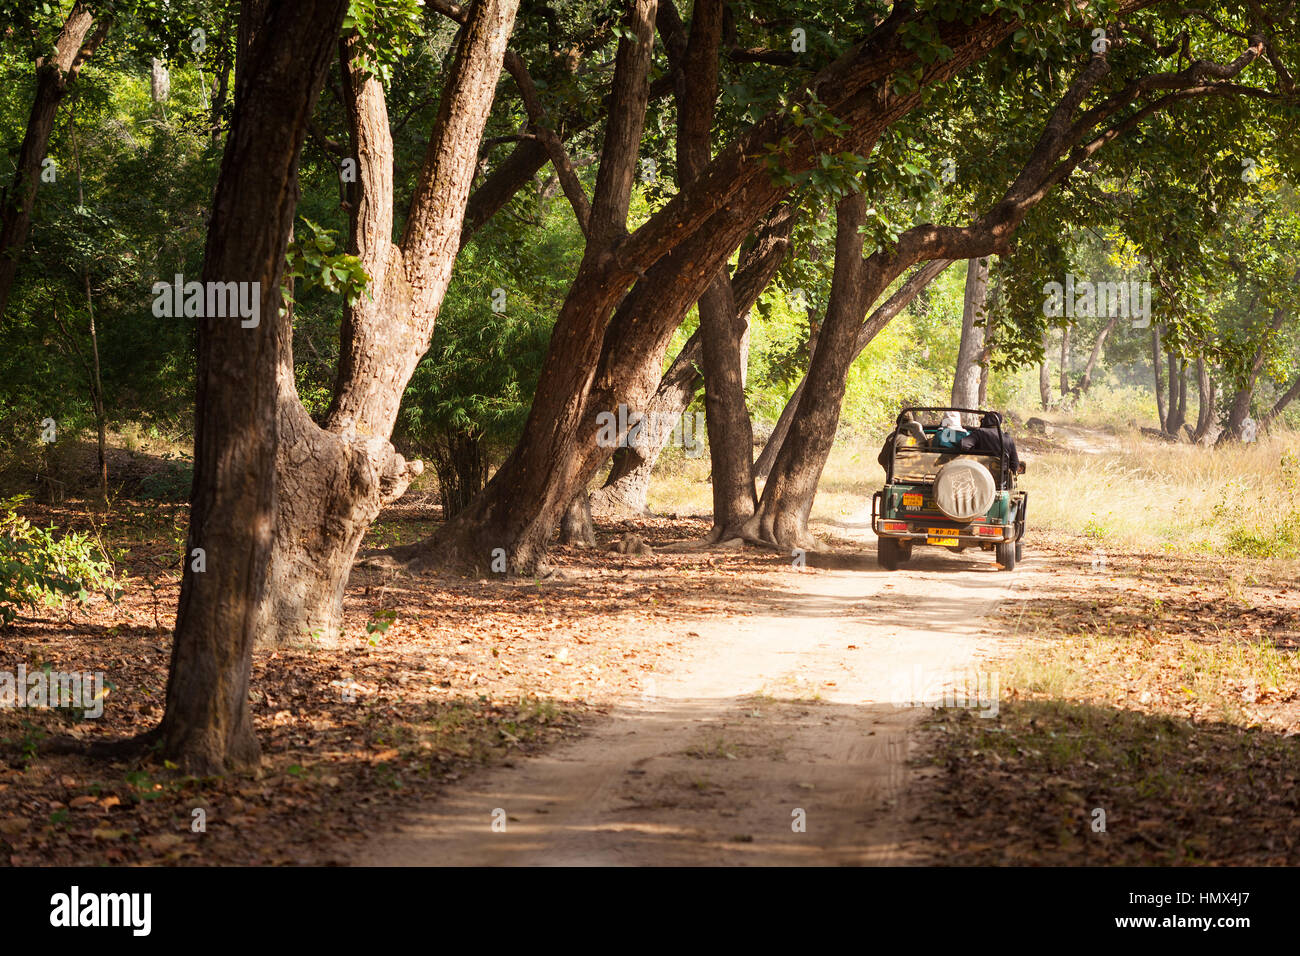 TALA, INDIA - JANUARY 09, 2015 : A safari jeep on a trail through forest in Bandhavgarh National Park in Madhya - Stock Image